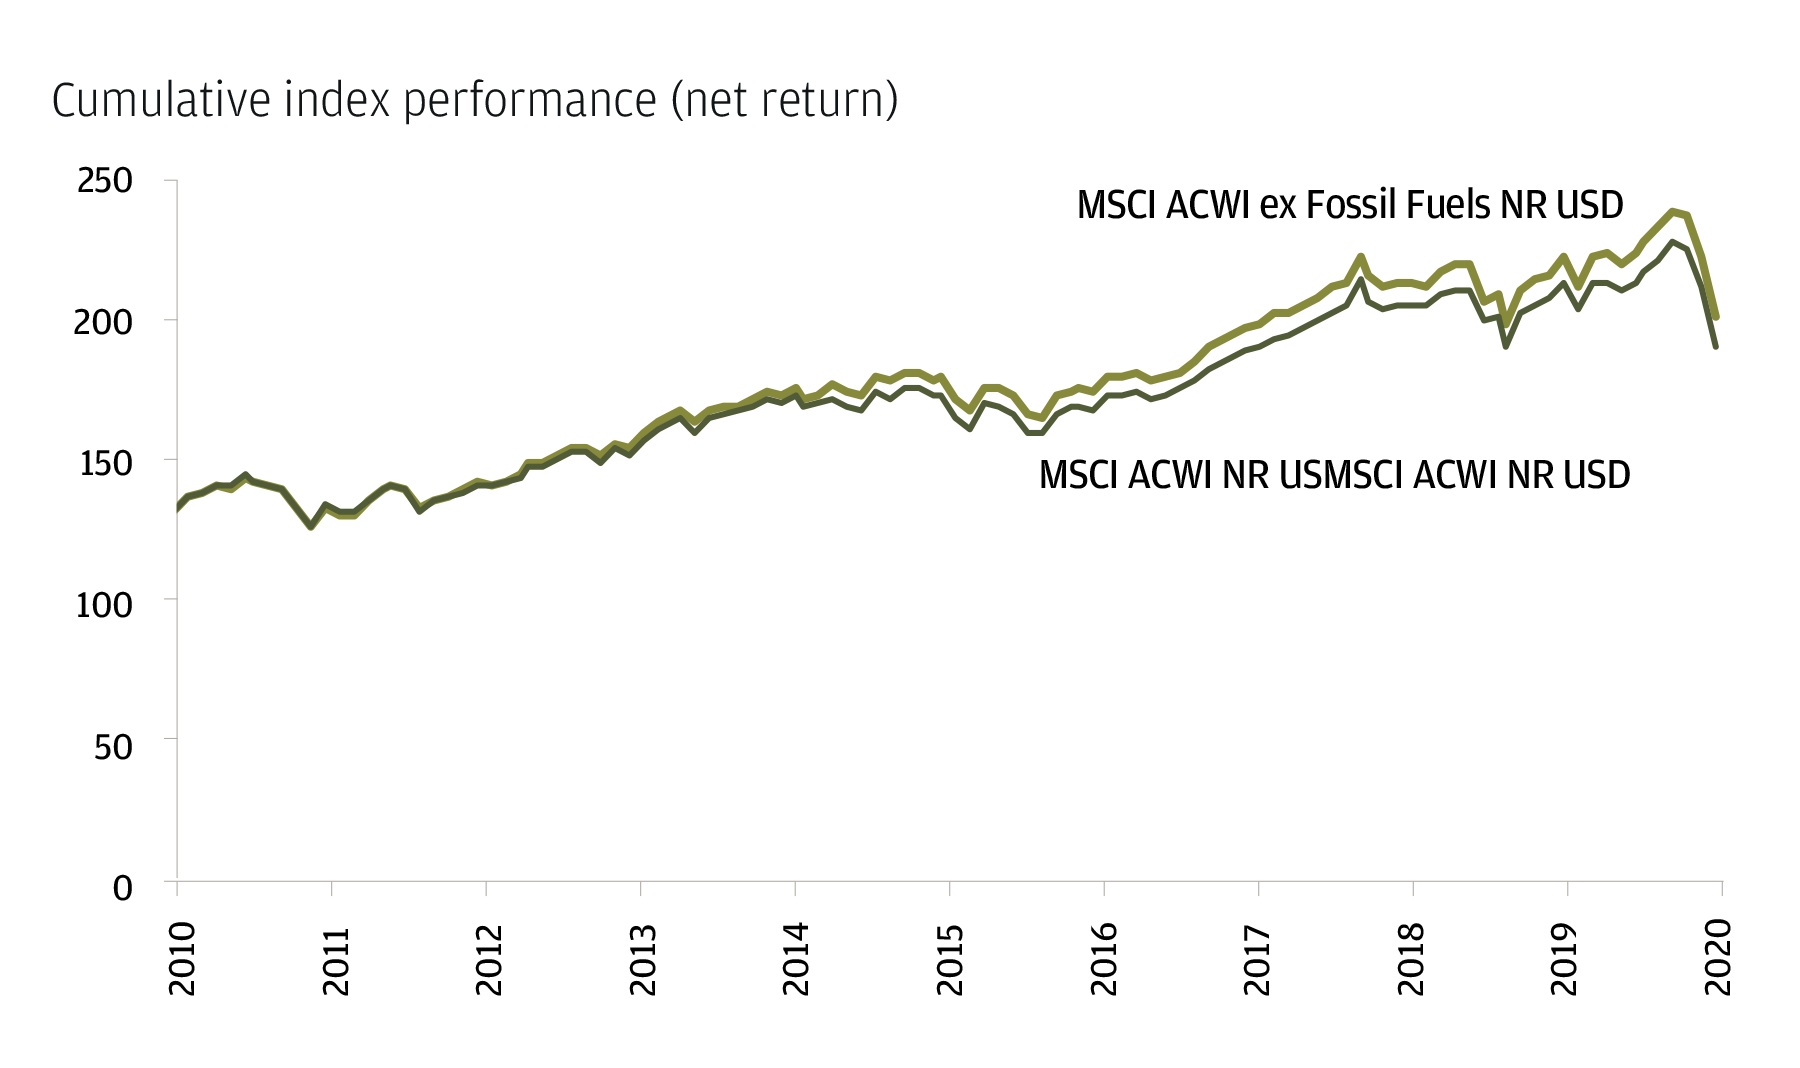 This line chart compares the performance of the MSCI ACWI ex Fossil Fuels NR USD Strategy to the MSCI ACWI NR USD strategy for the years between November 2010 and March 2020. The lines representing the two strategies begin together and until 2013 have the same growth to roughly 120% return. Starting in July 2014, the MSCI ACWI ex Fossil Fuels NR USD return begins to grow larger than the MSCI ACWI NR USD strategy. This gap, representing the delta of growth, continues to grow between the two until 2020 when a sharp dip is observed.